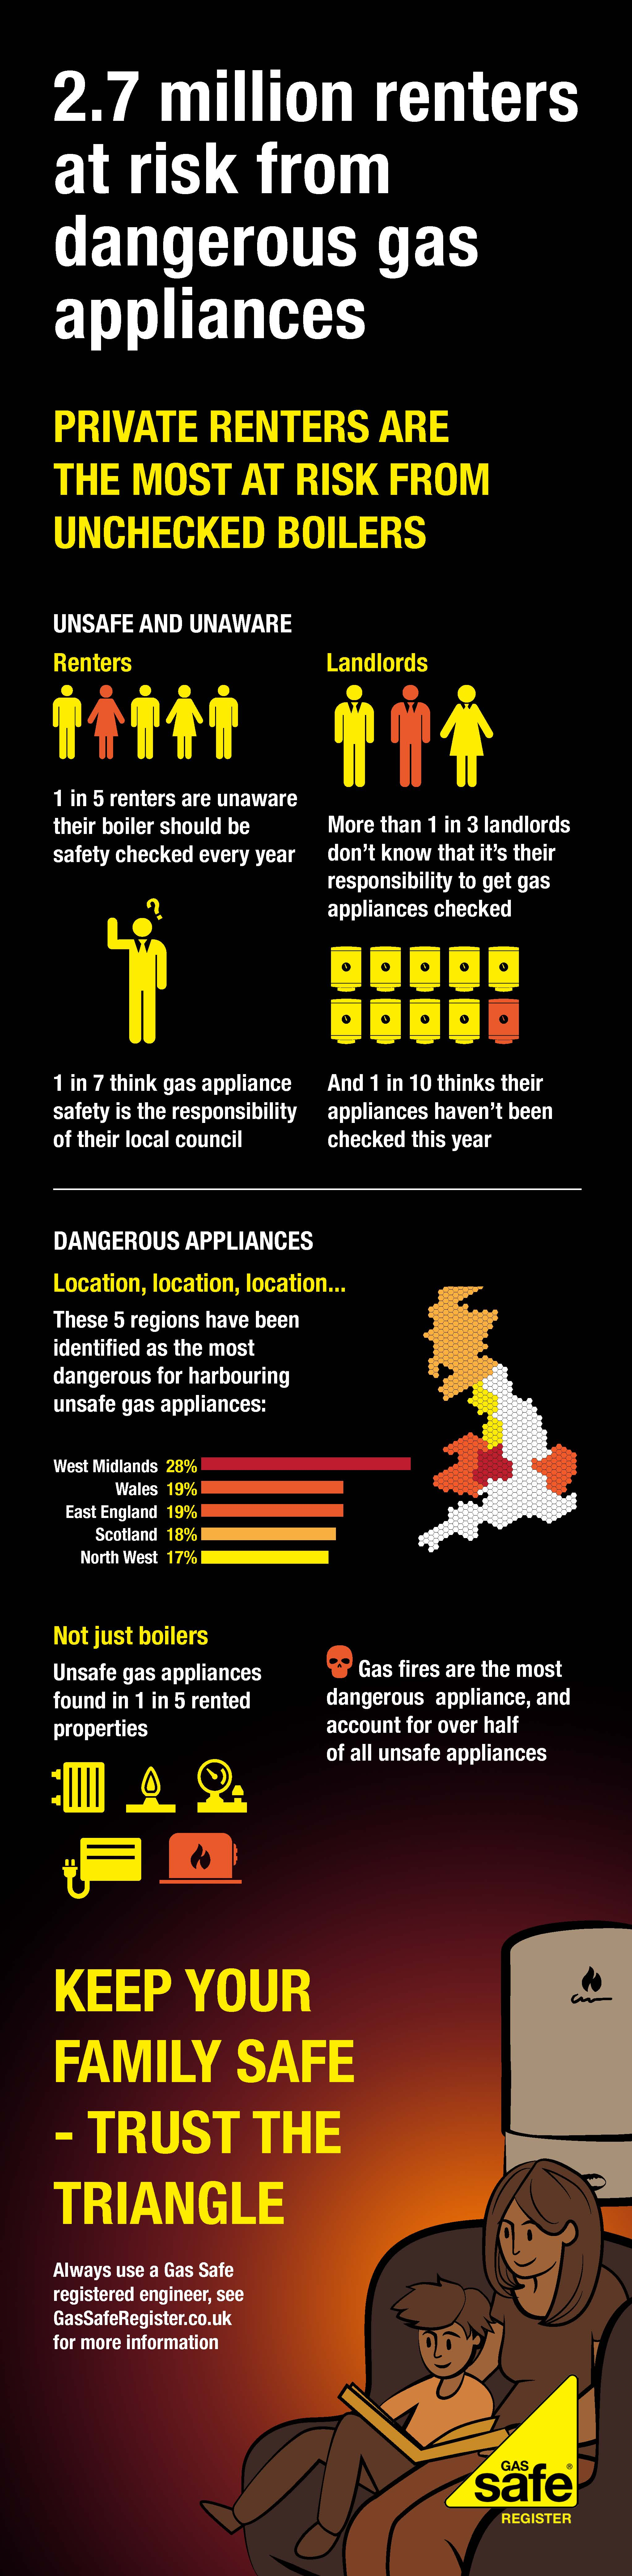 Private renters infographic